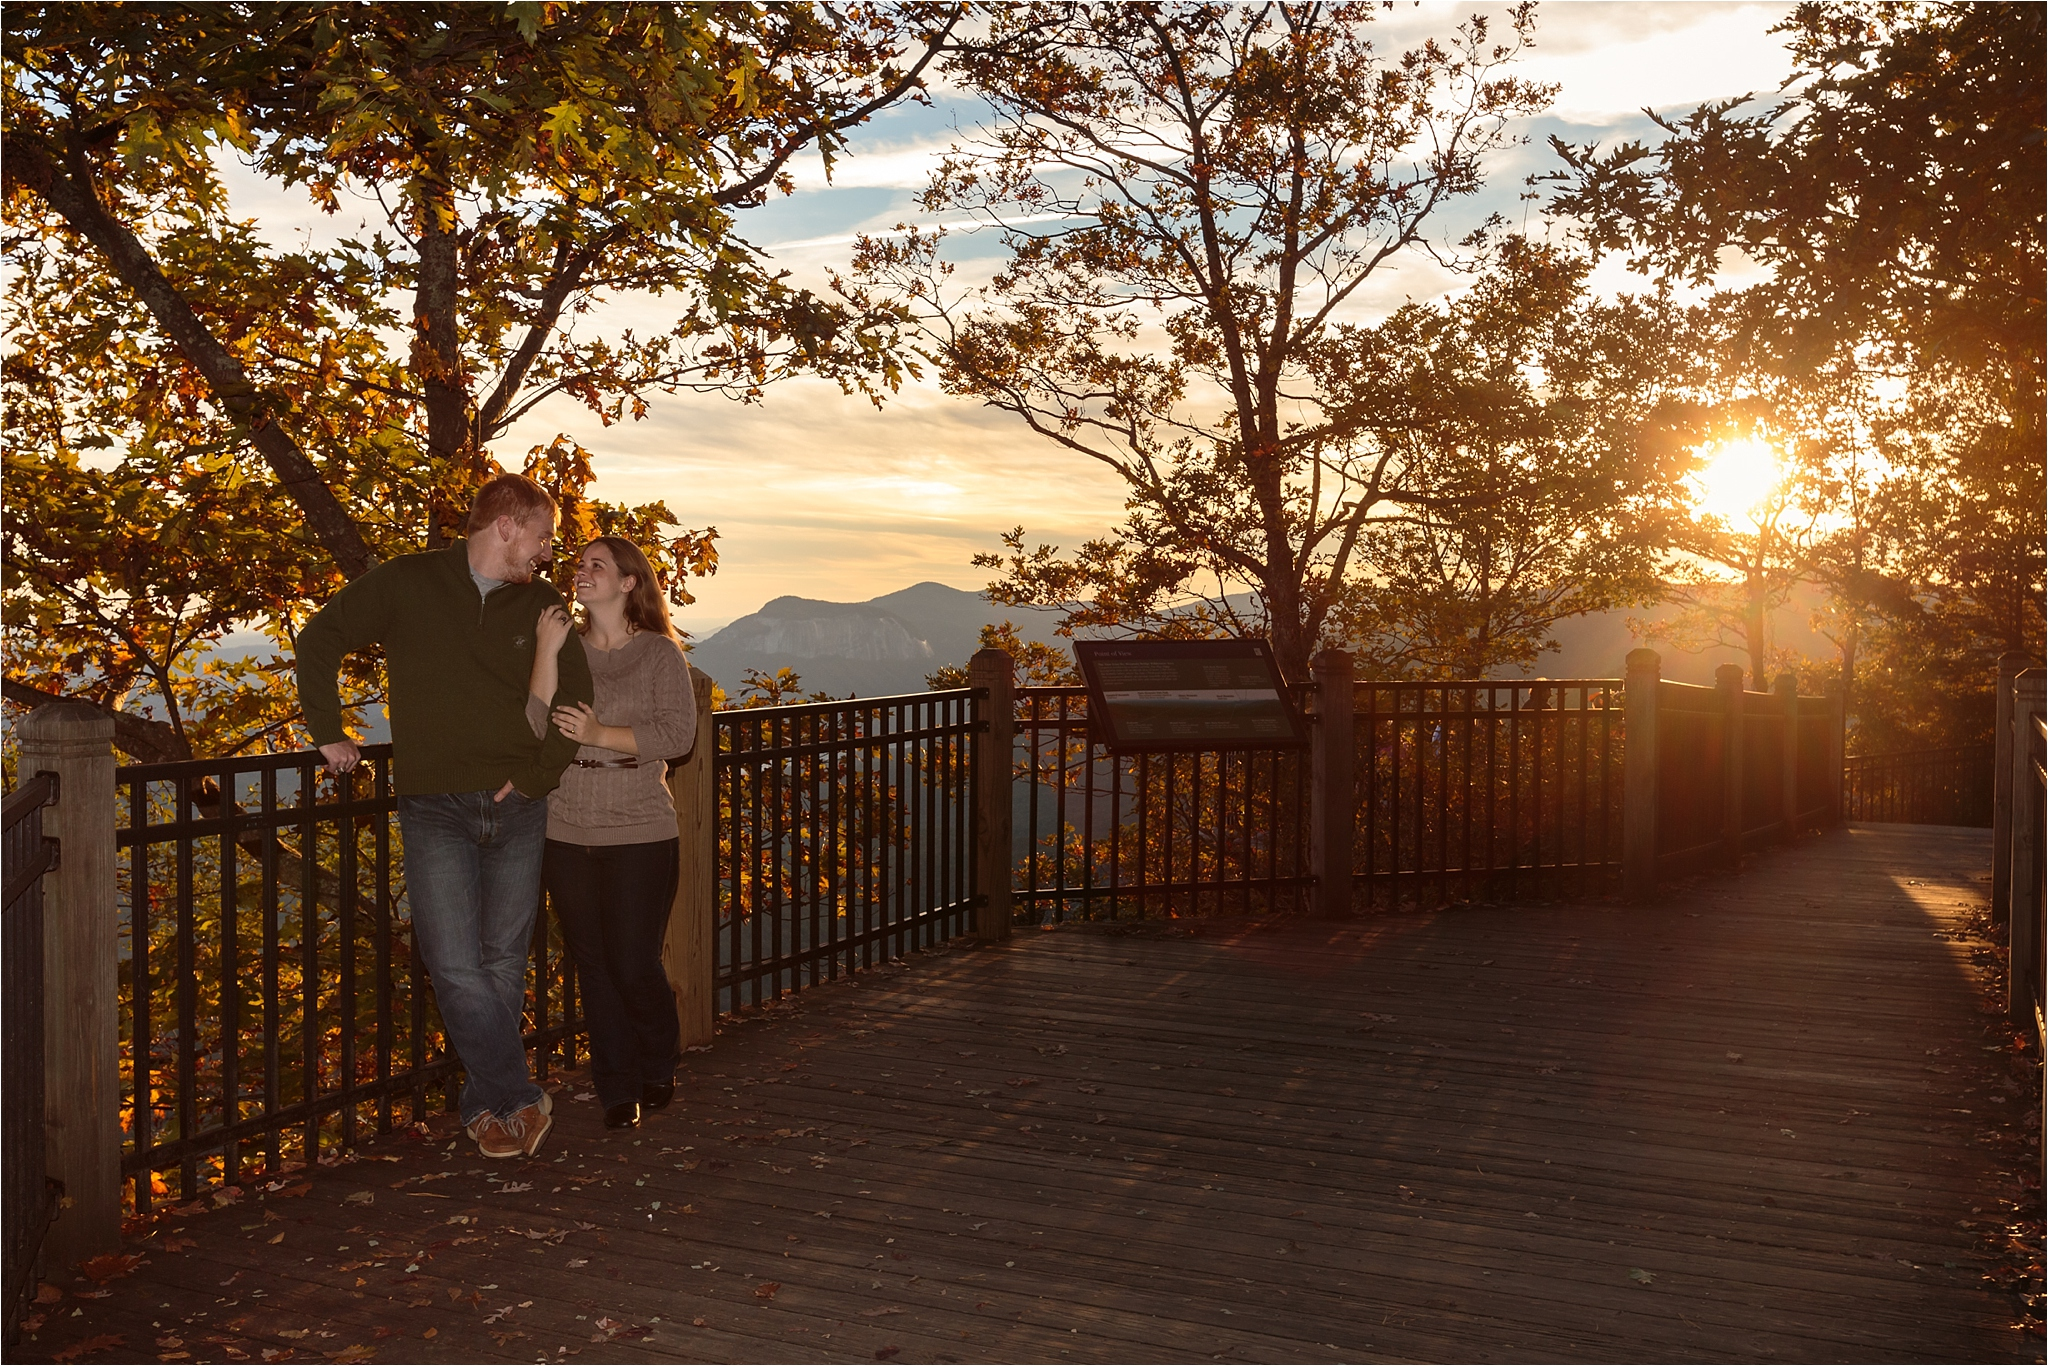 caesars-head-engagement-shoot-21_blog.jpg